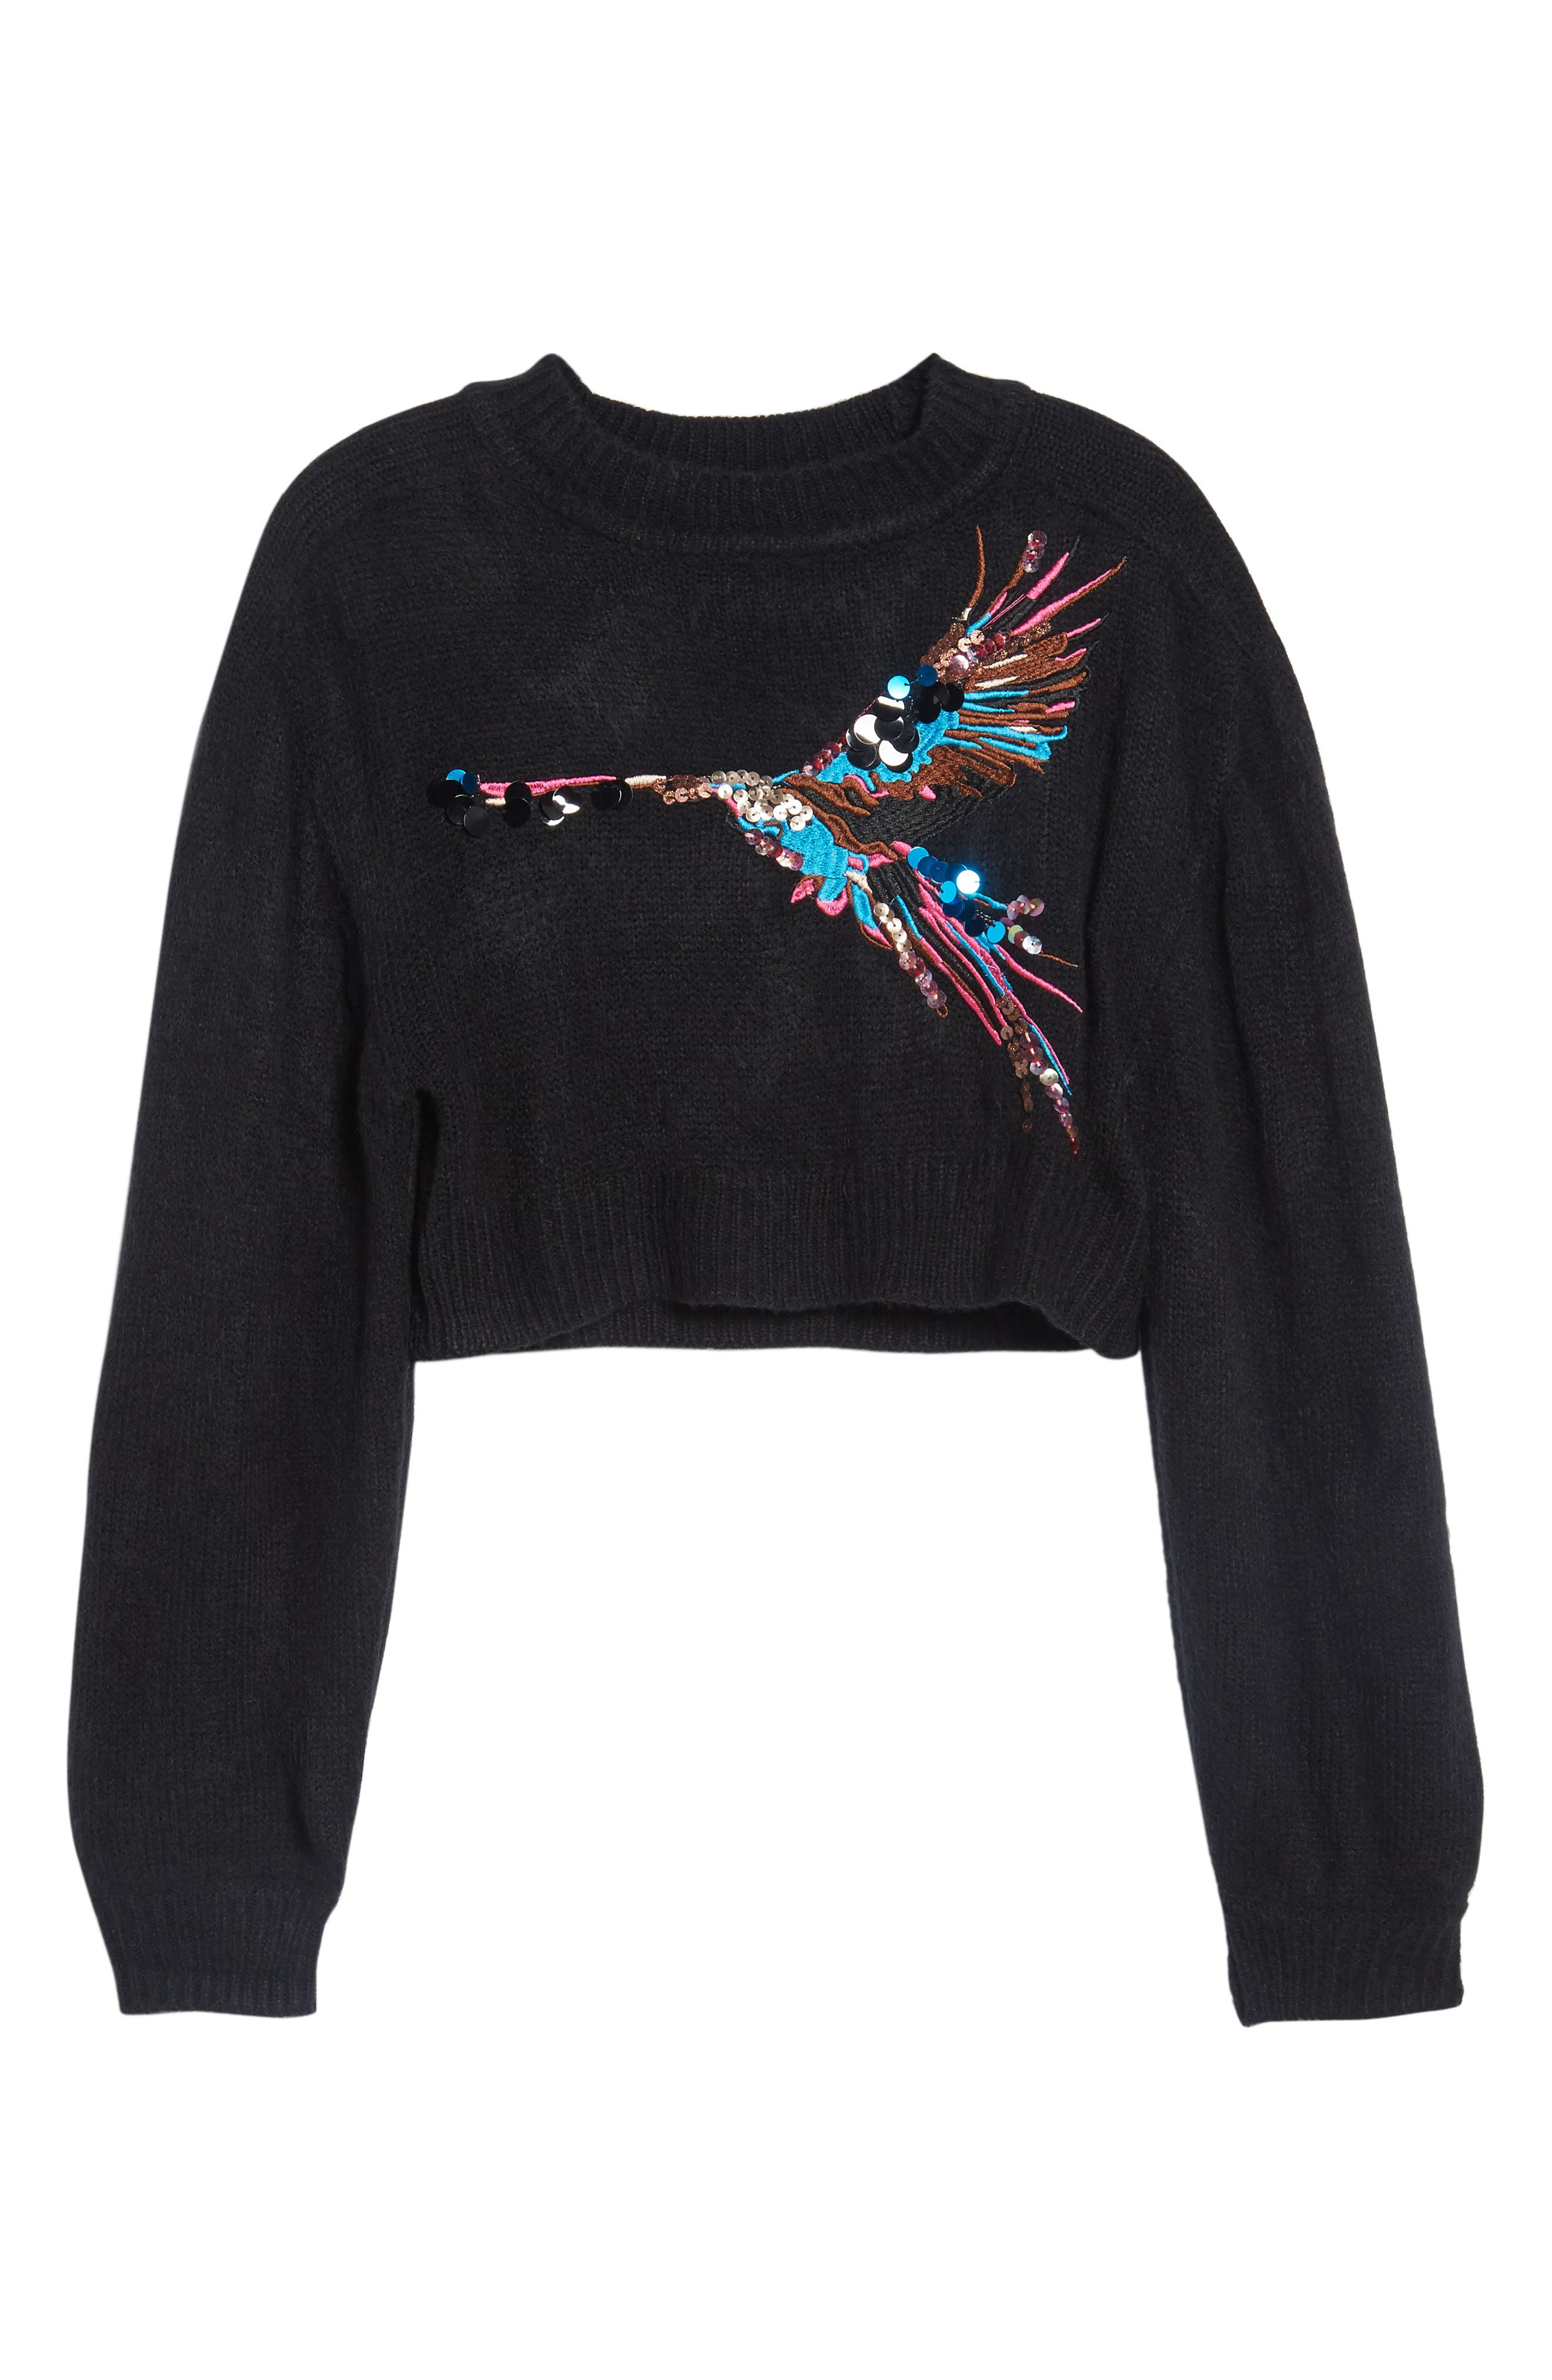 Embroidered Bird Sweater,                             Alternate thumbnail 6, color,                             001